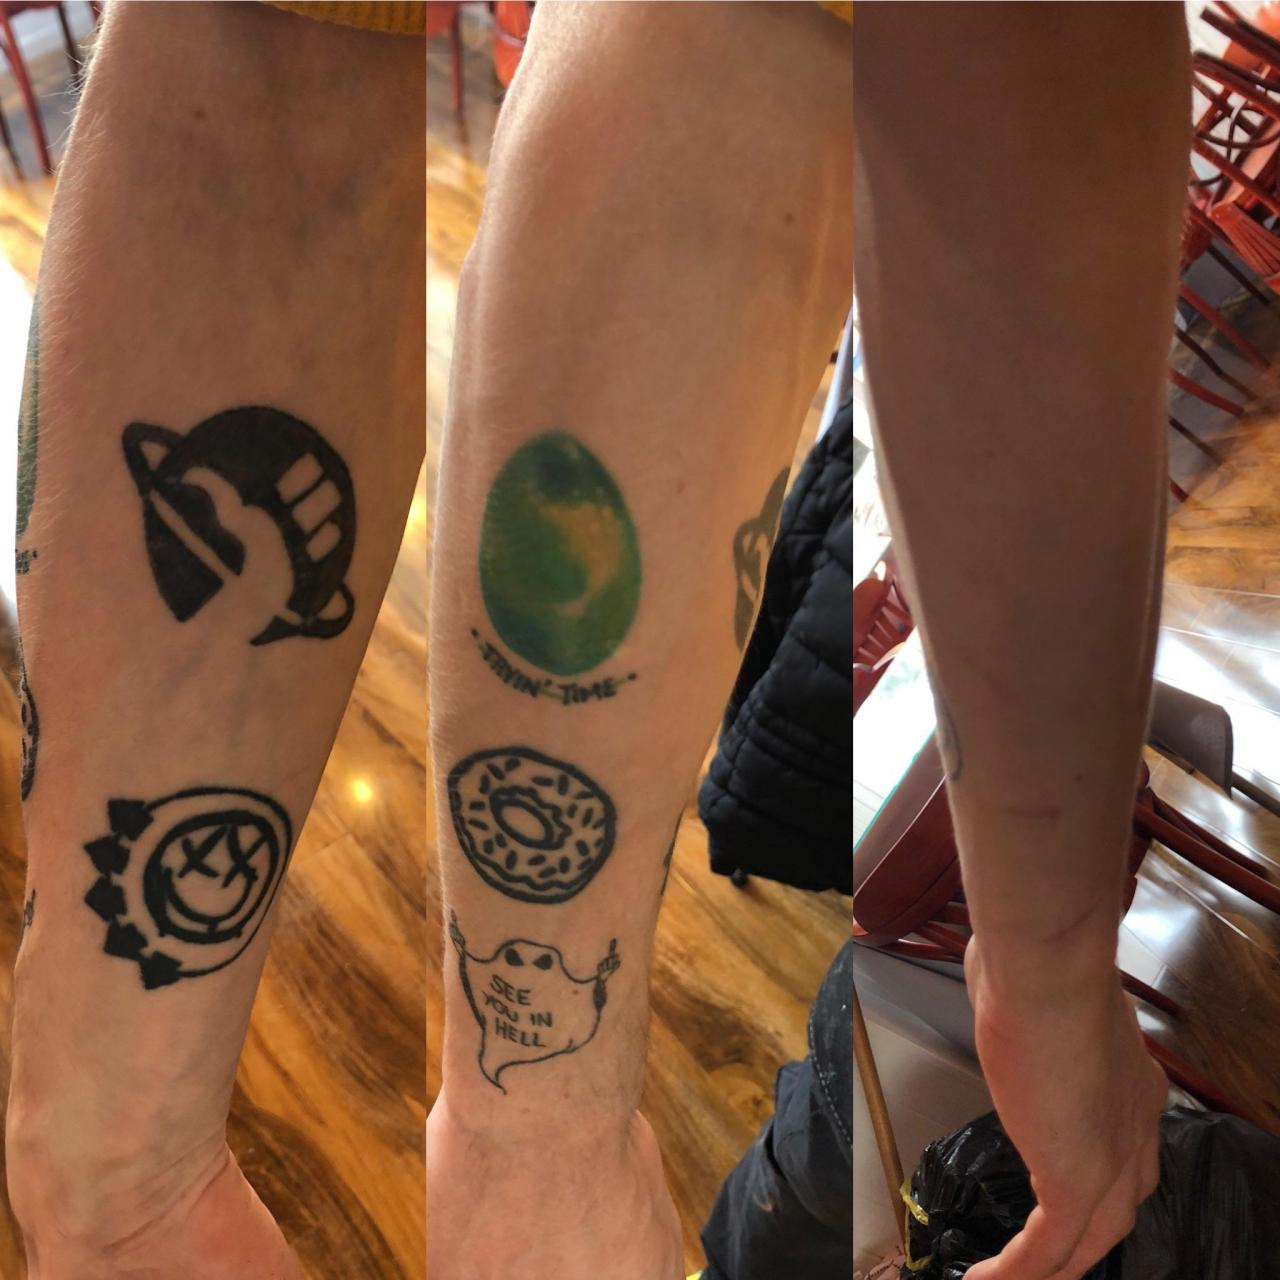 Background ideas? Needing filler to help add colour to all my B&W tattoos! Any ideas on what would go well?